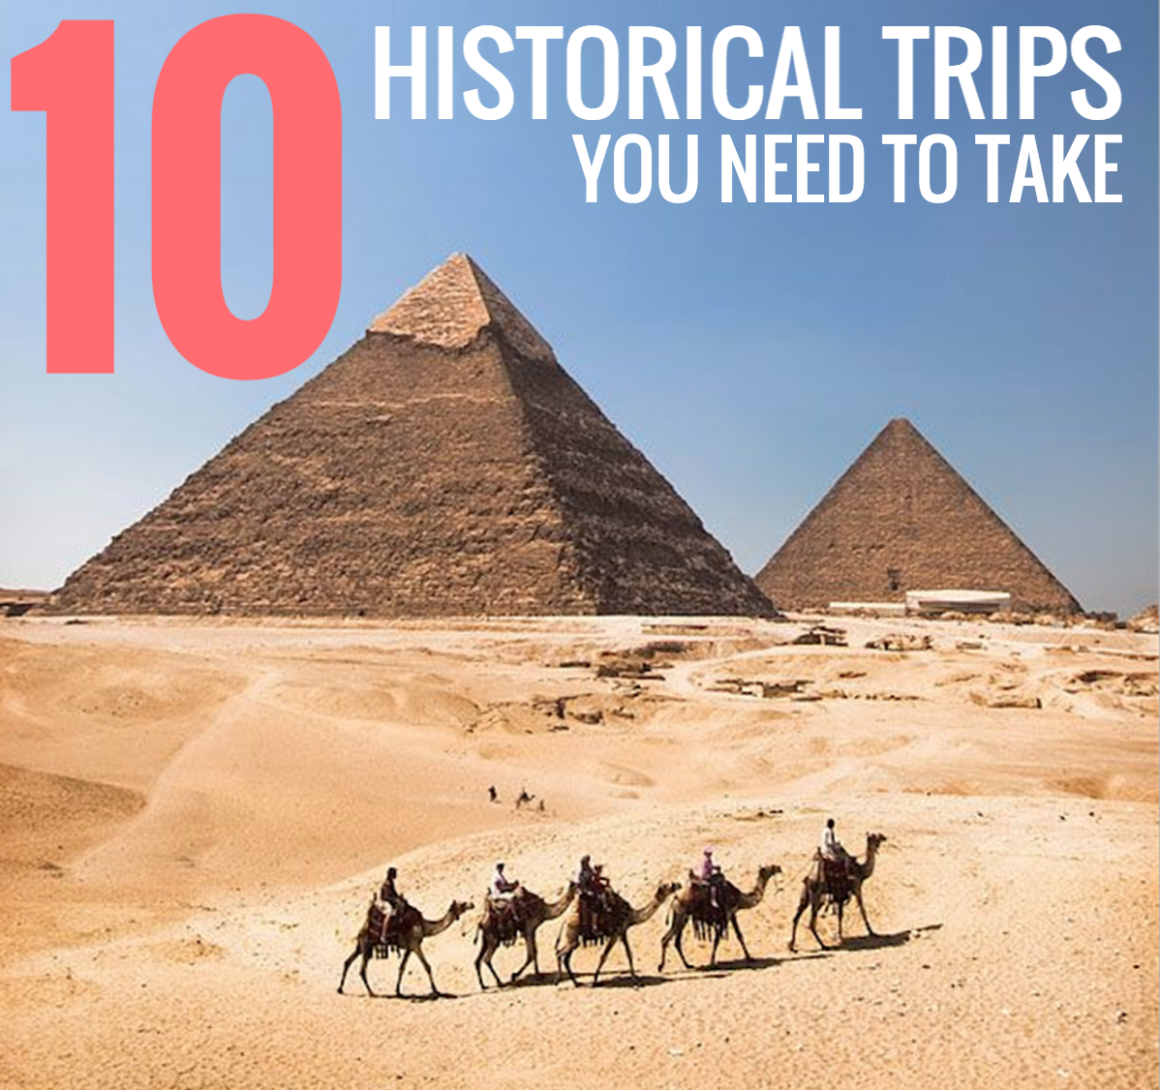 10 historical trips to take